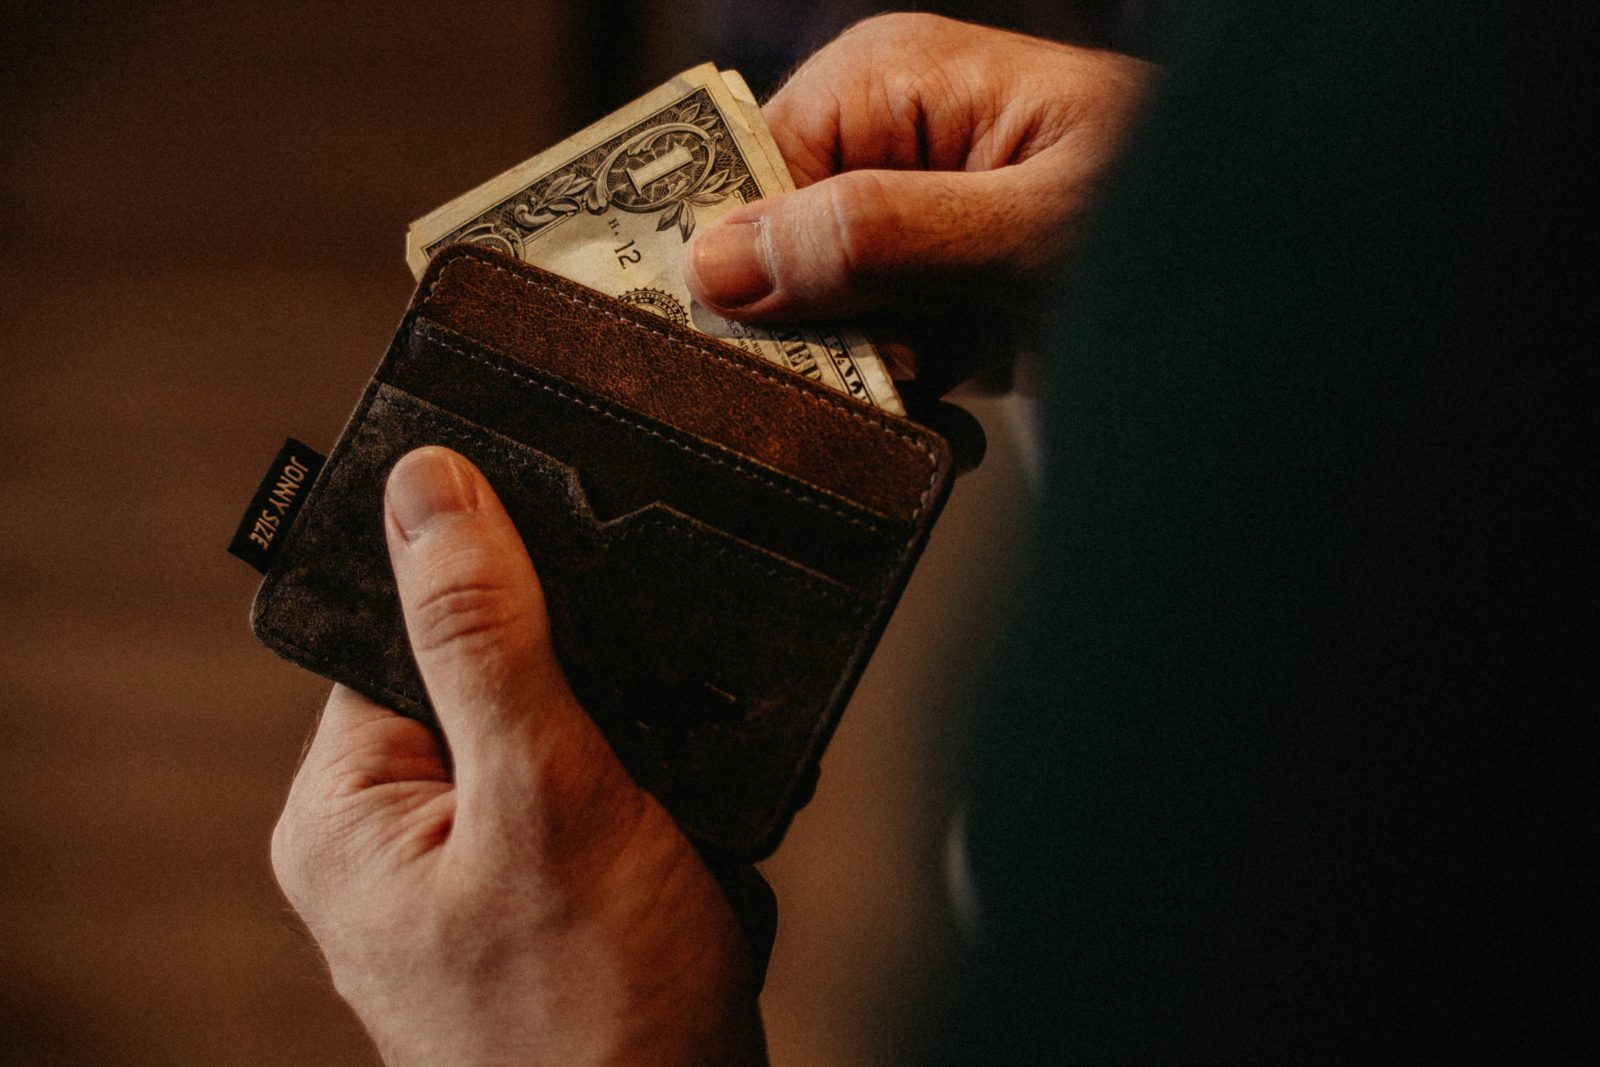 Photo of money removed from wallet